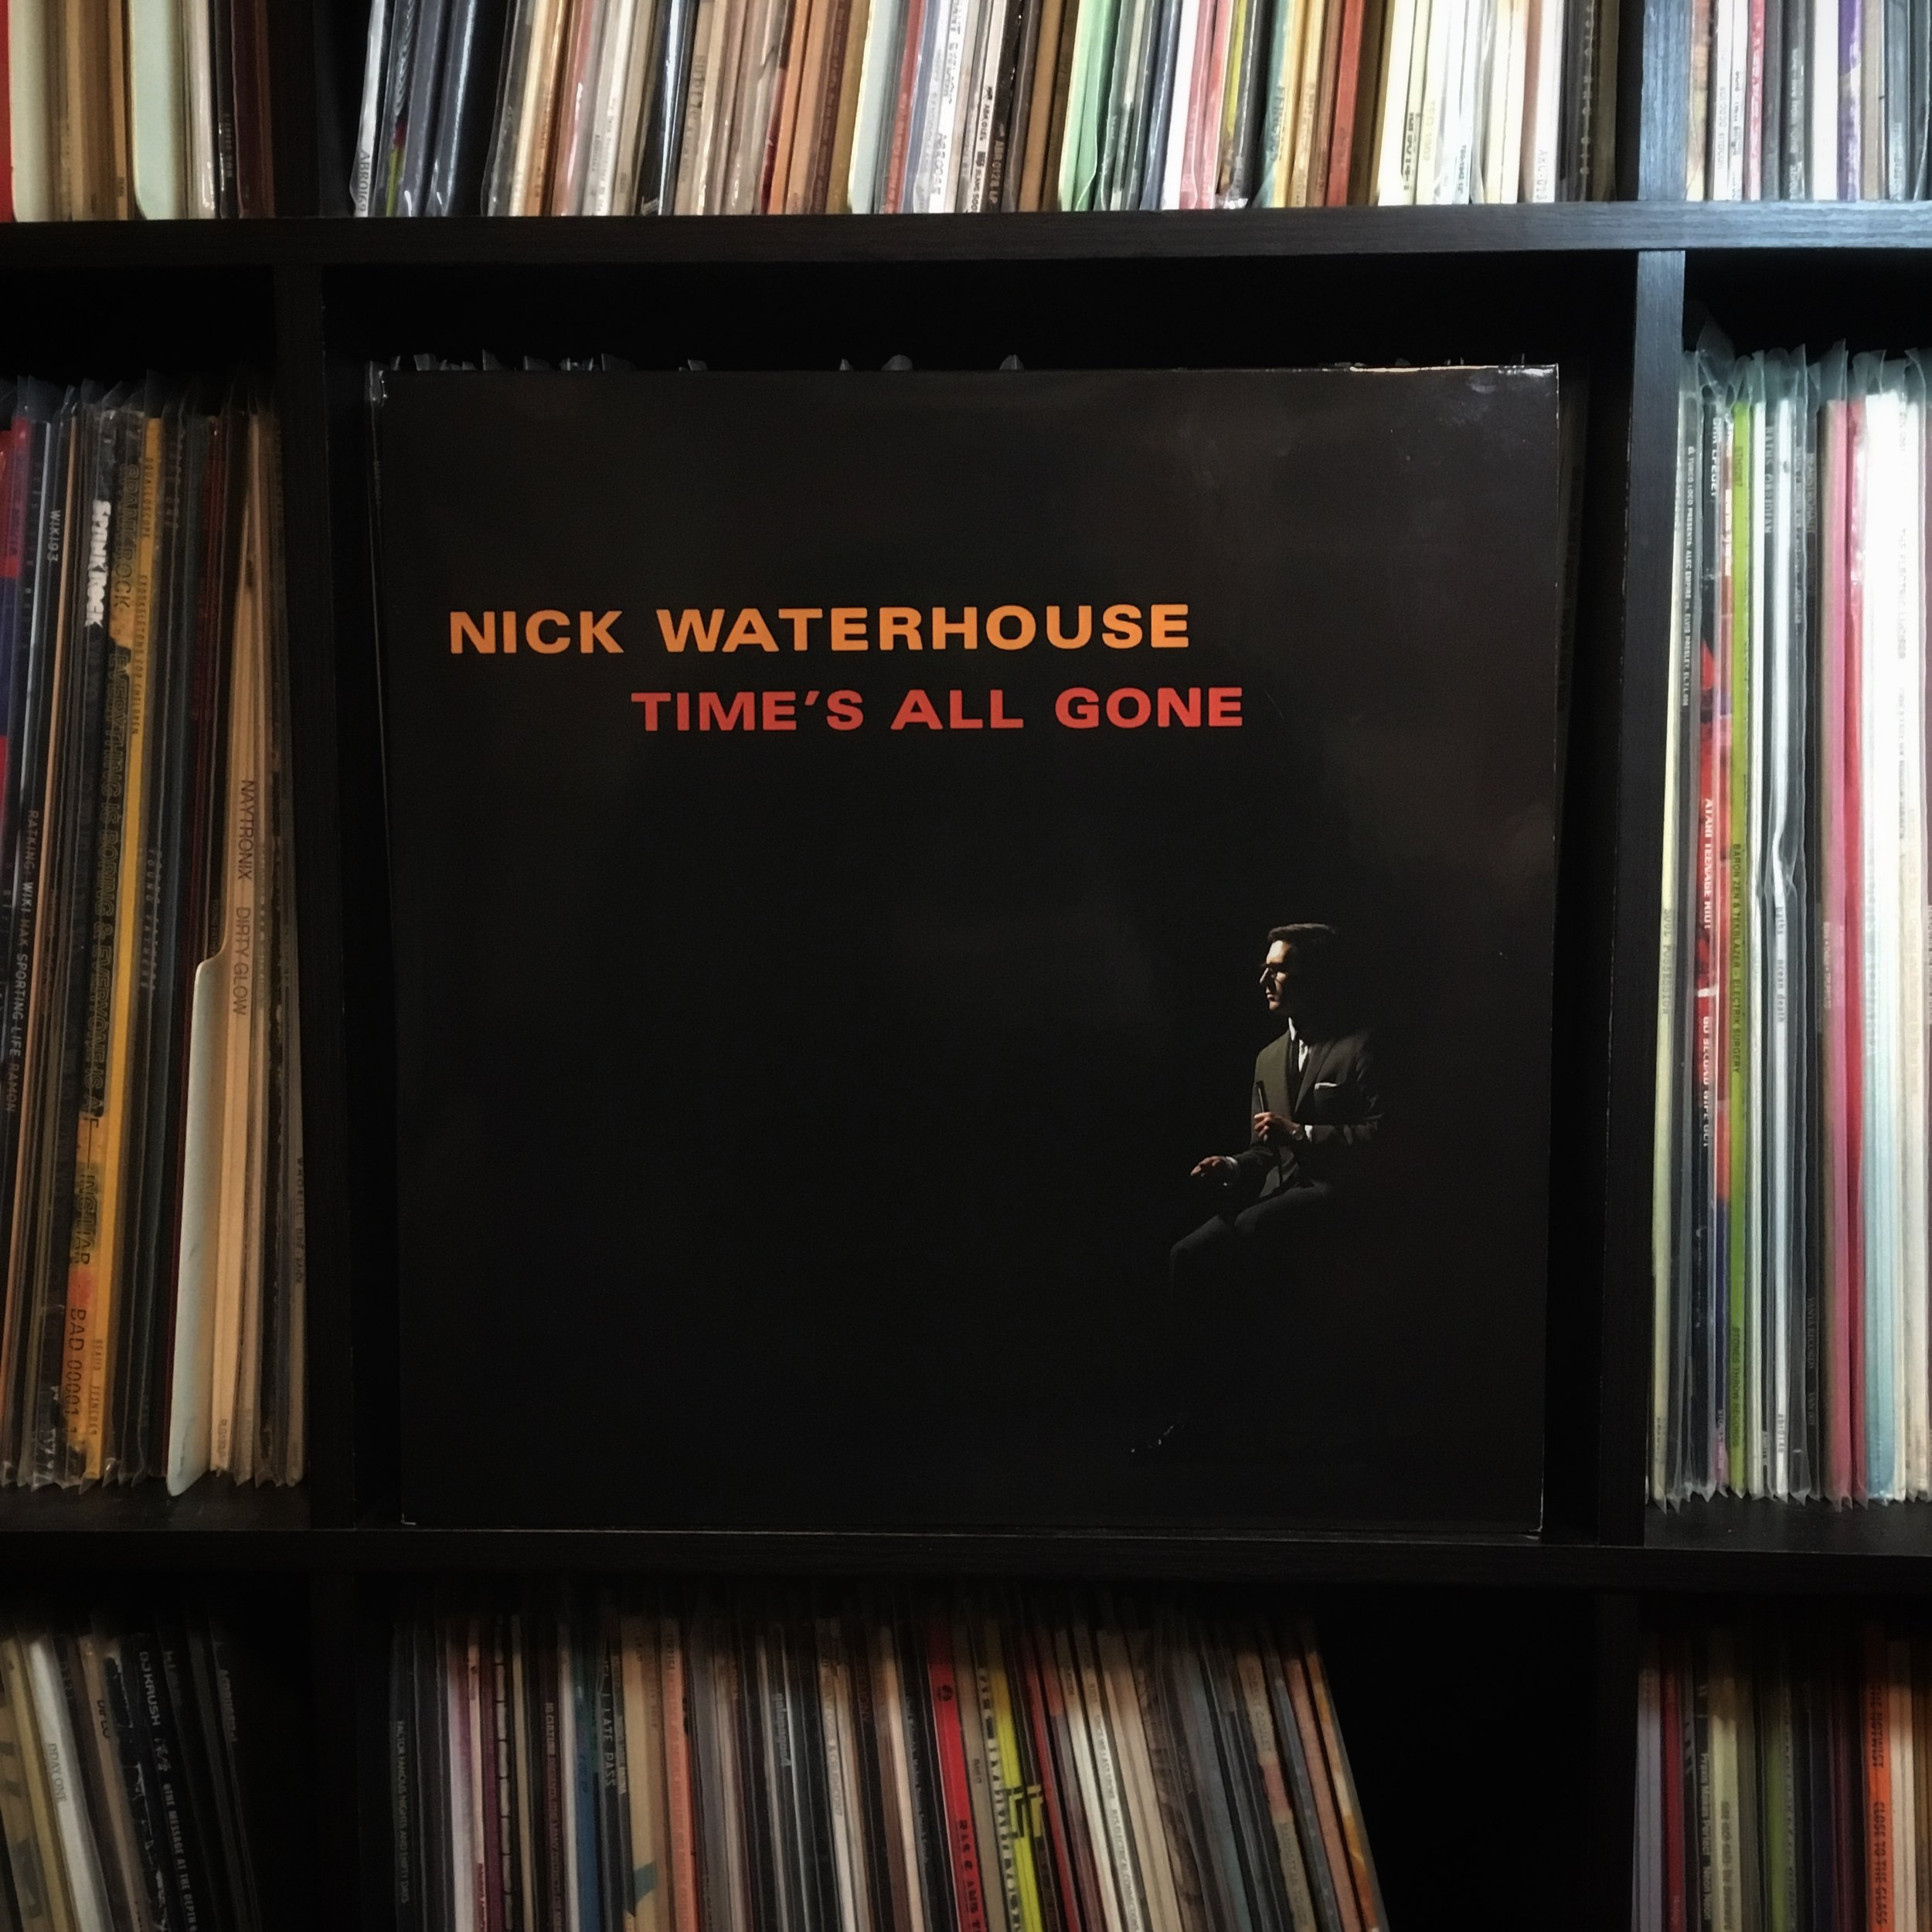 26 nick waterhouse.JPEG